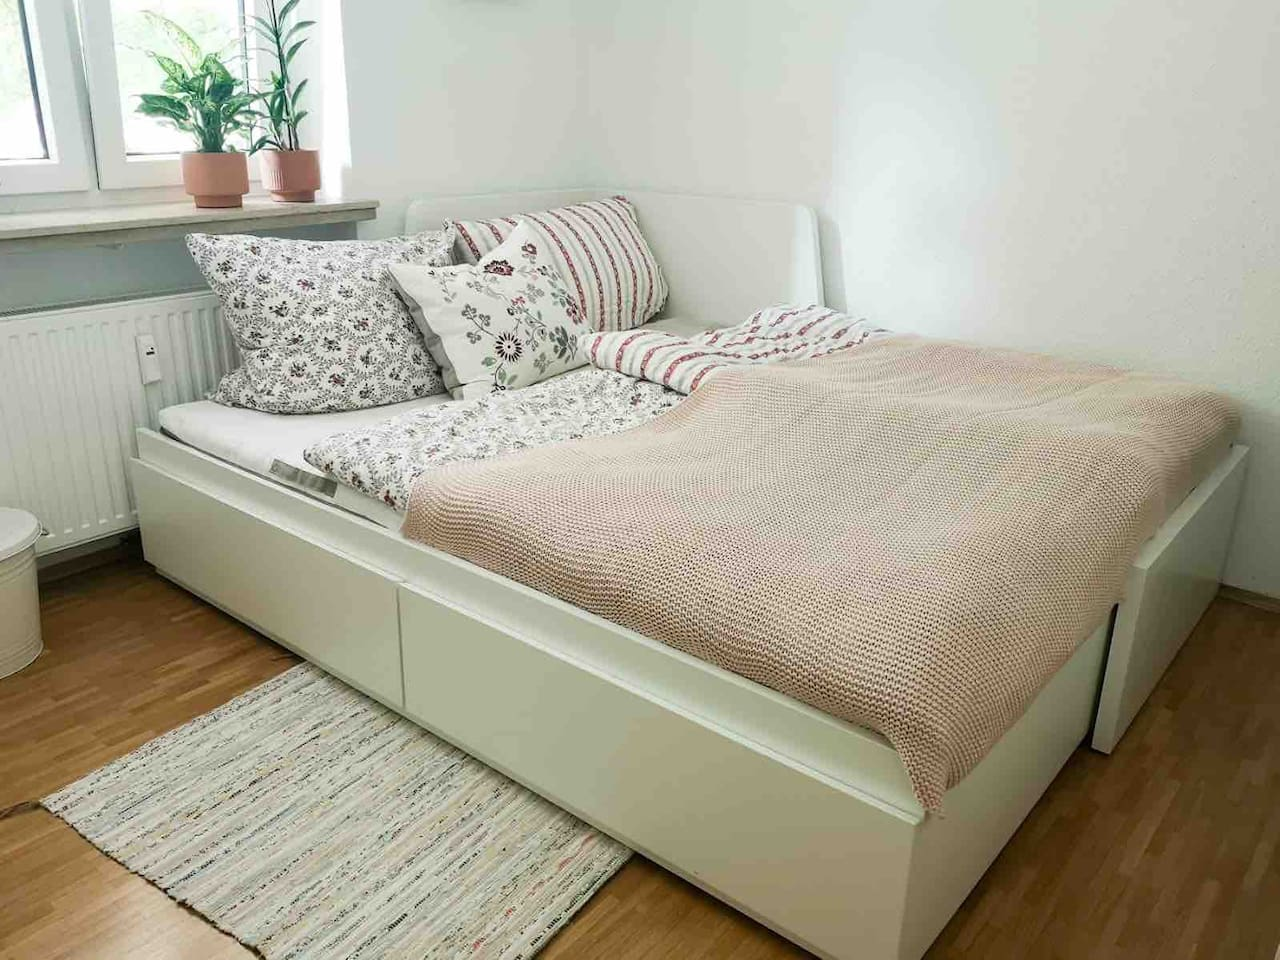 Bed extended to a queens-size bed (160 x 80). The desk and the chair are removed!